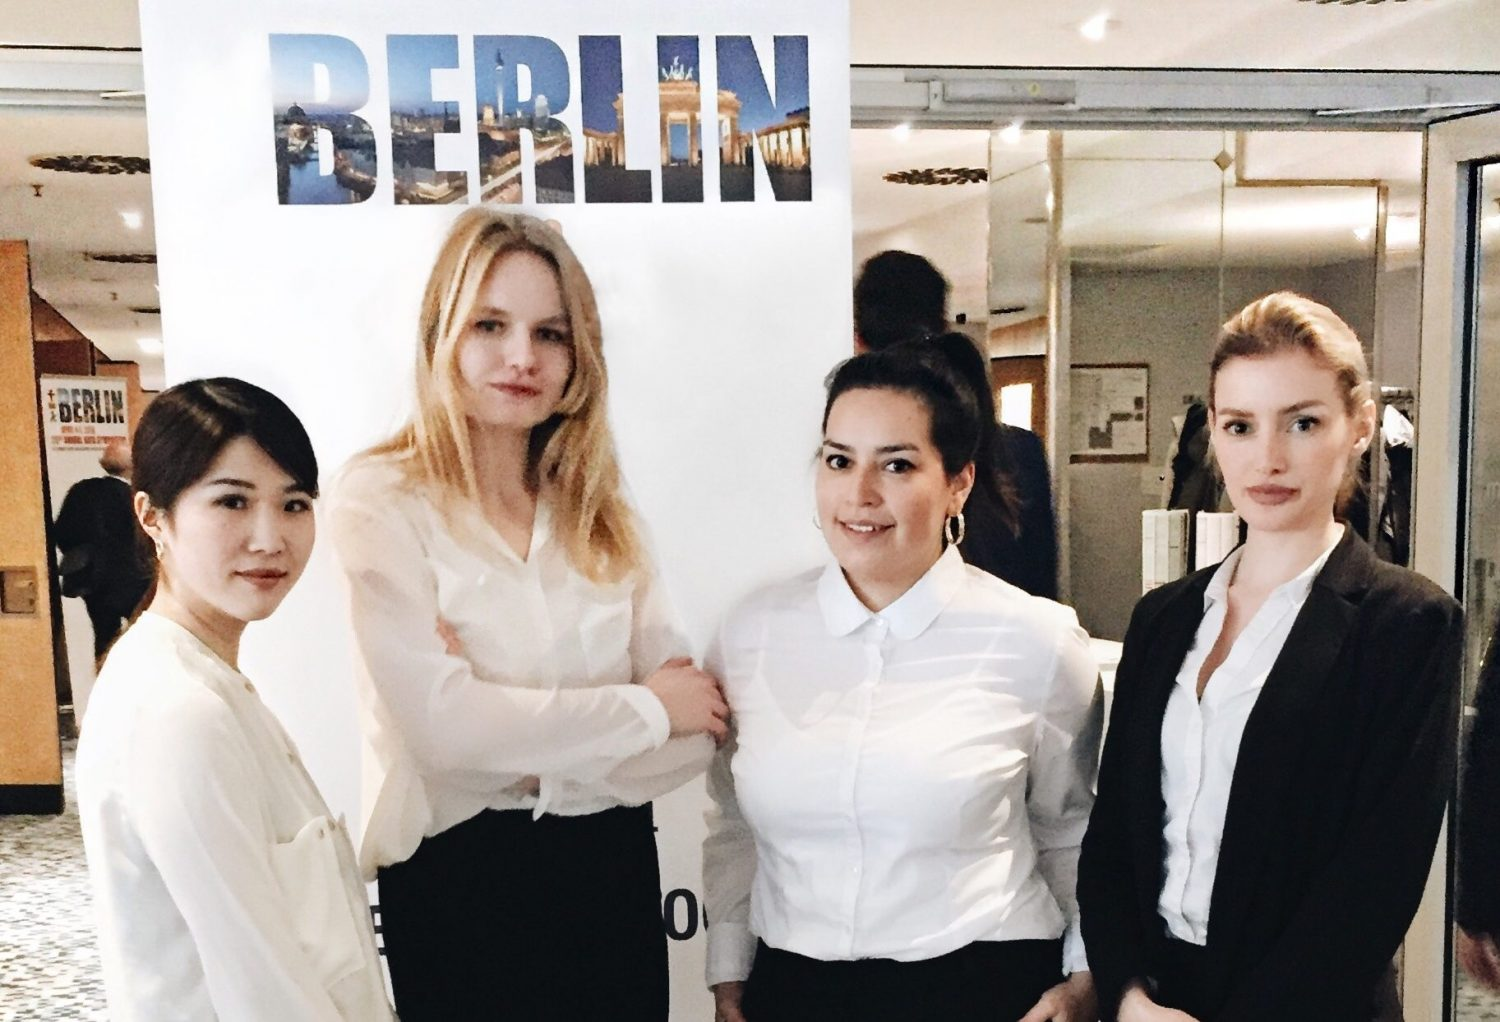 Messehostessen, Hostessen Agentur Berlin